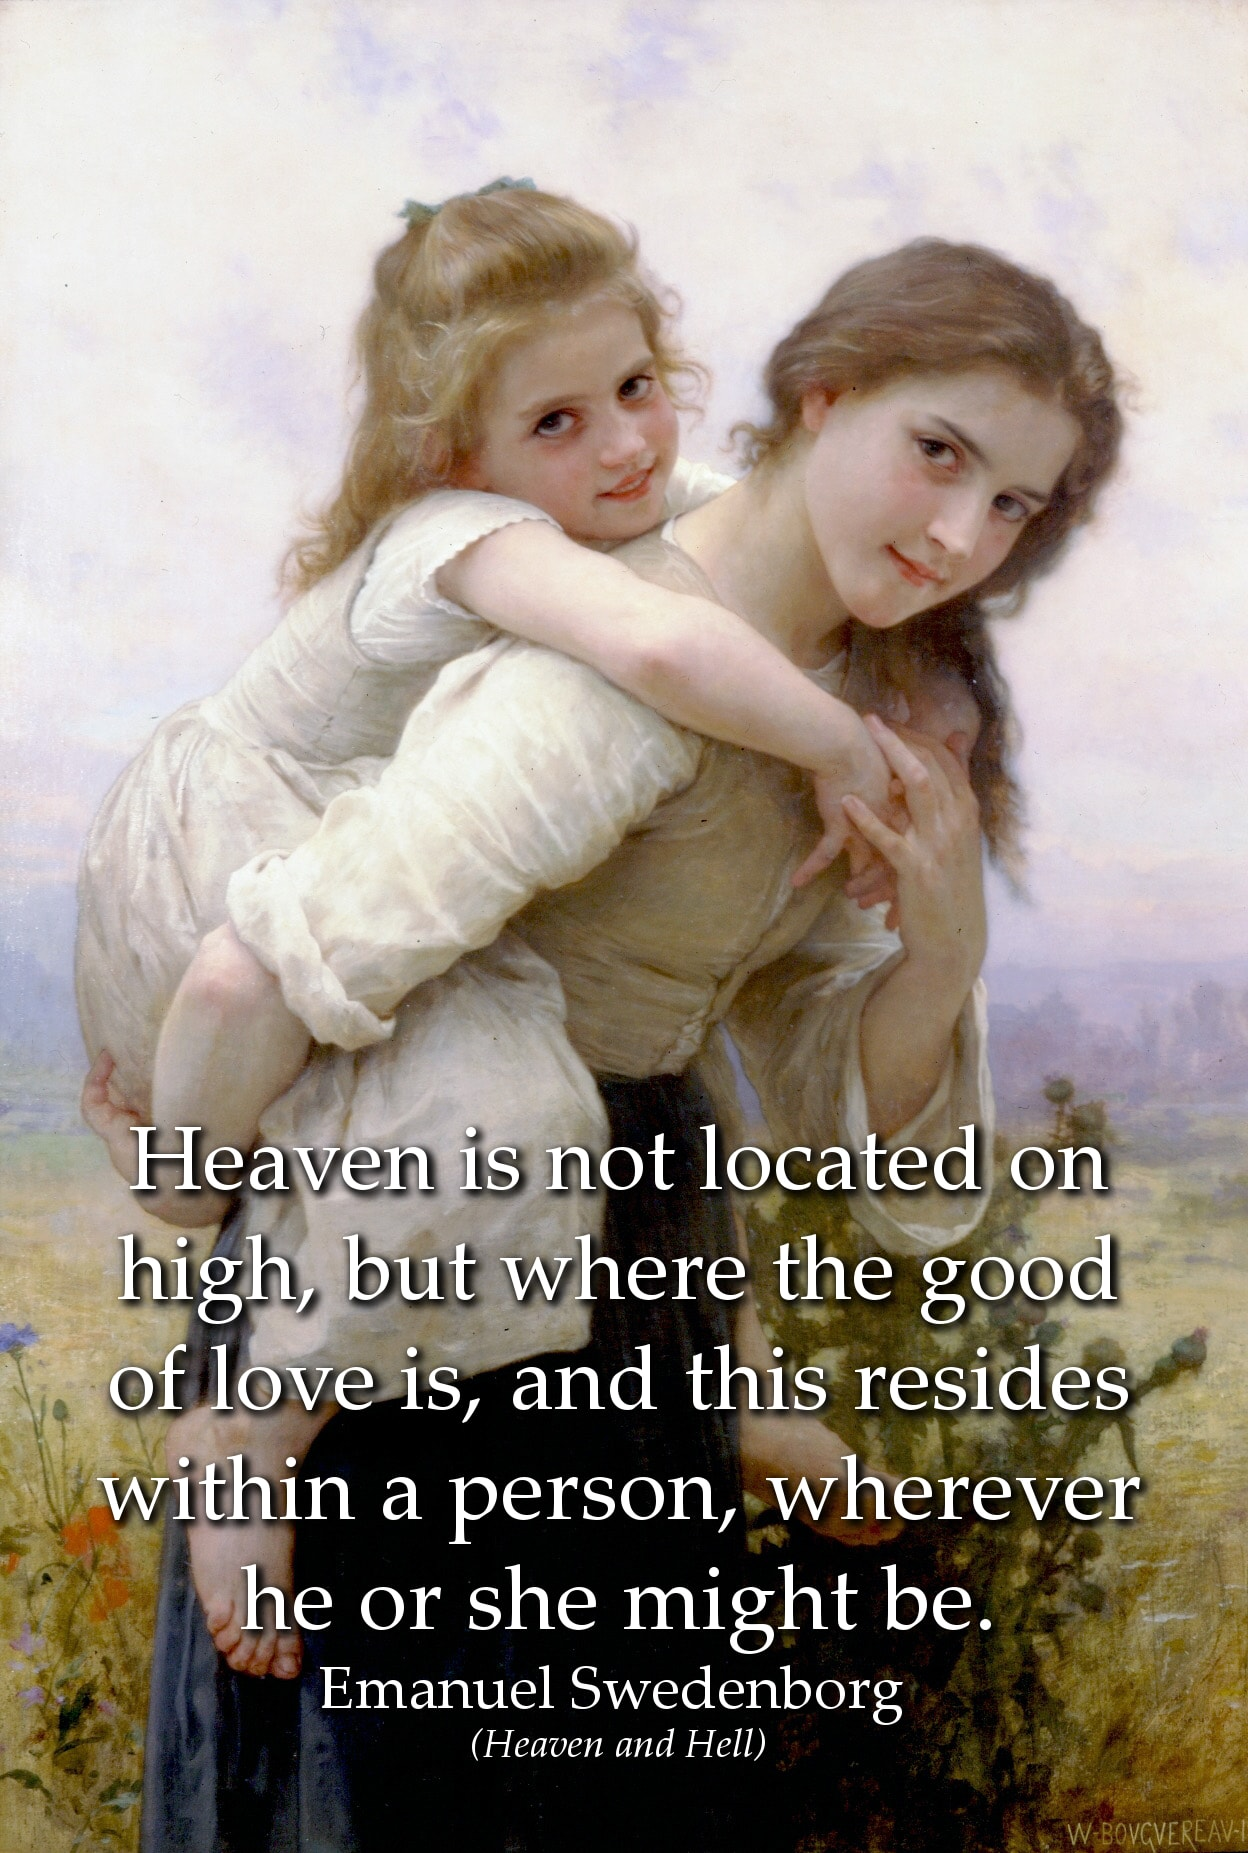 Emanuel Swedenborg Quote: Heaven is not located on high, but where the good of love is, and this resides within...